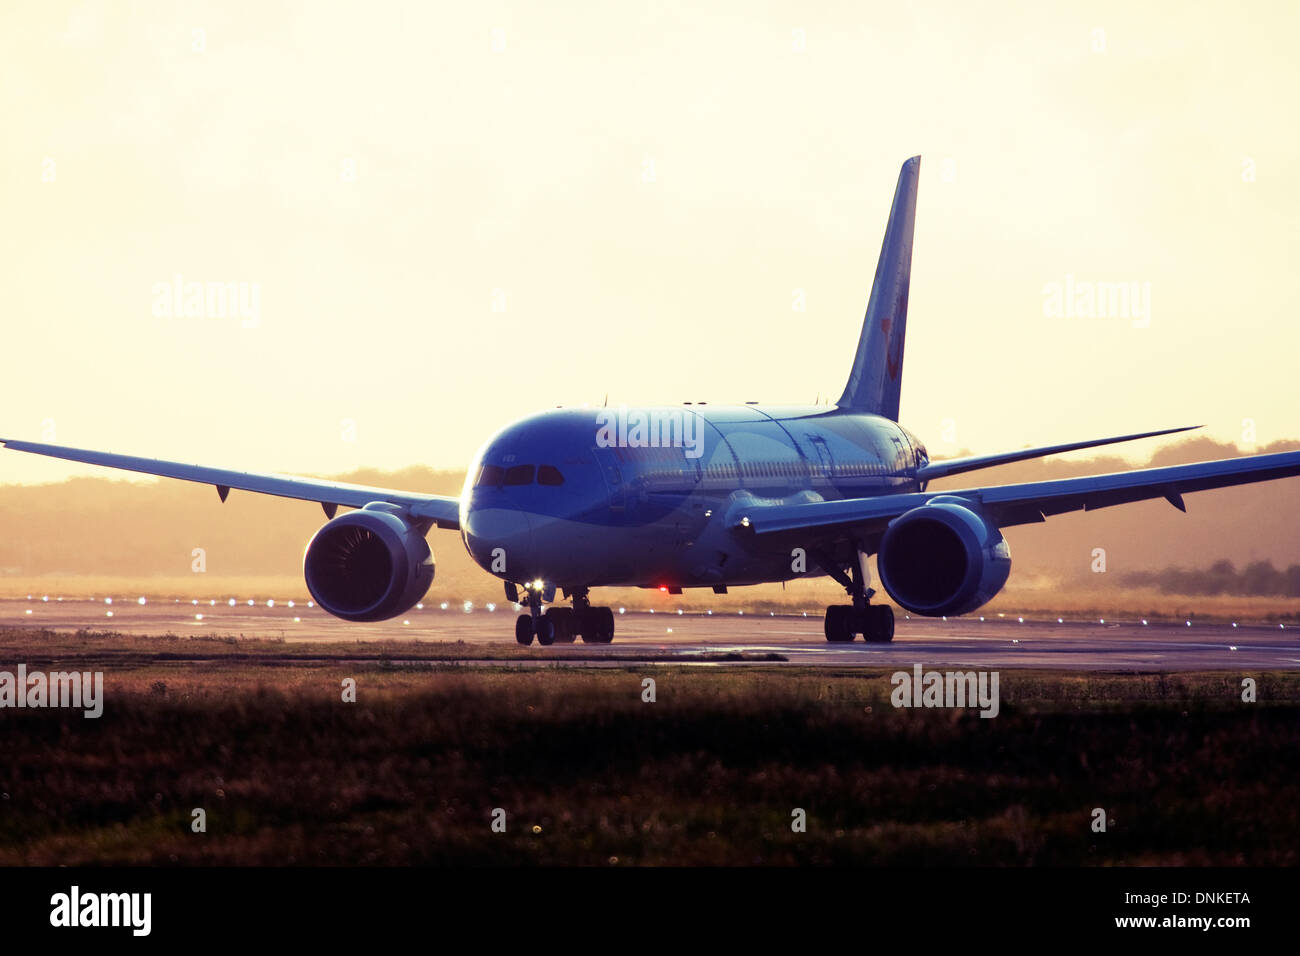 Thomson Airways Boeing 787-8 Dreamliner at London Gatwick Airport, England, UK. Stock Photo